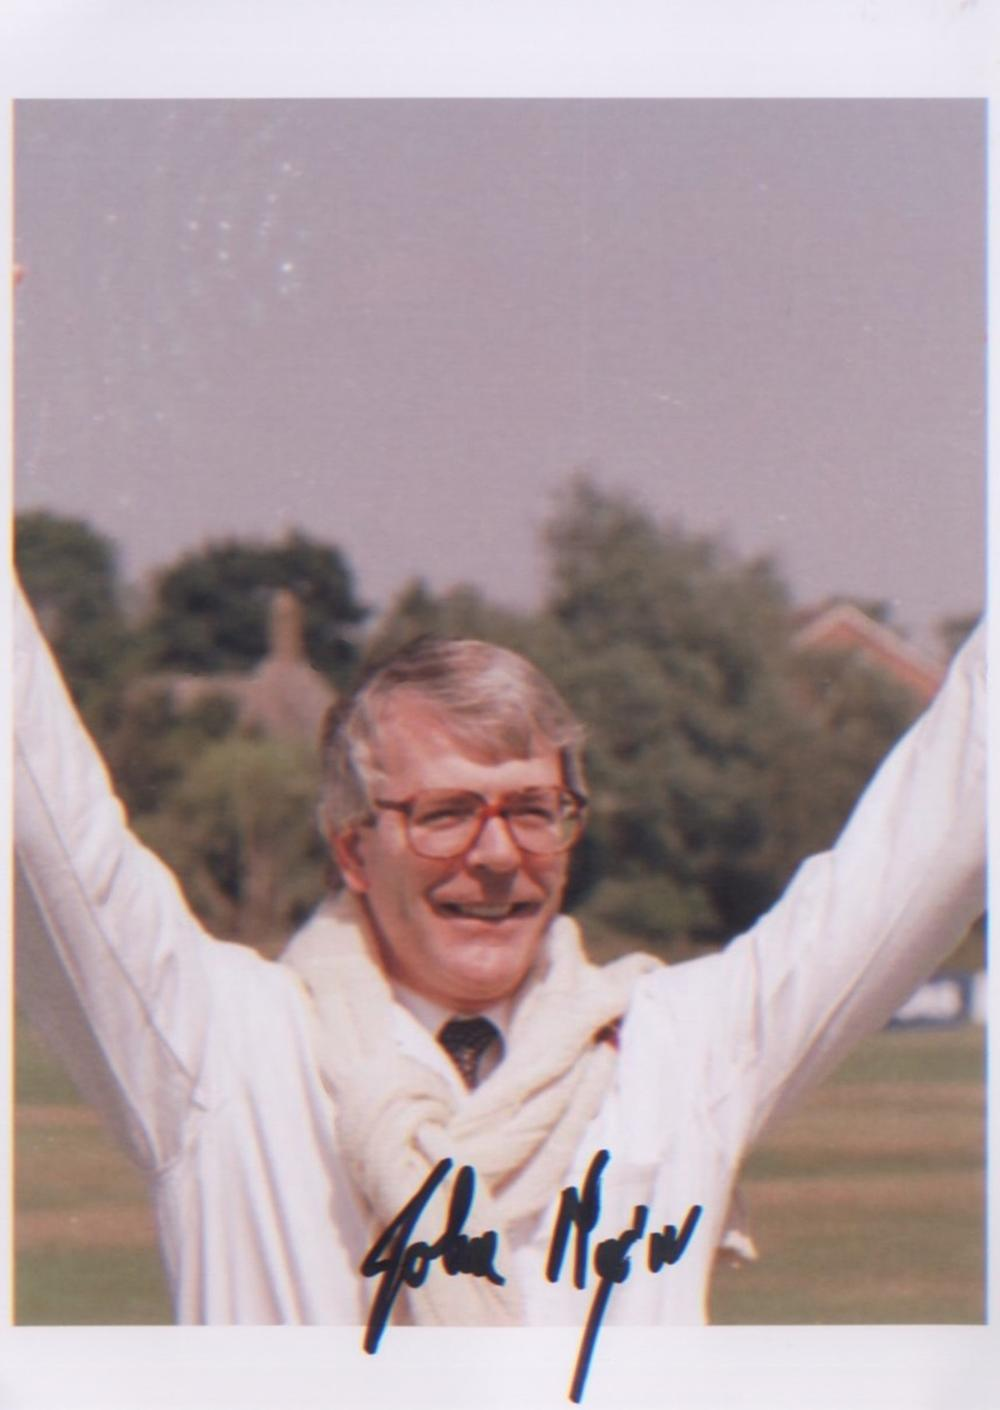 John Major signed Former UK Prime Minister 7x5 picture playing cricket. Good condition. All